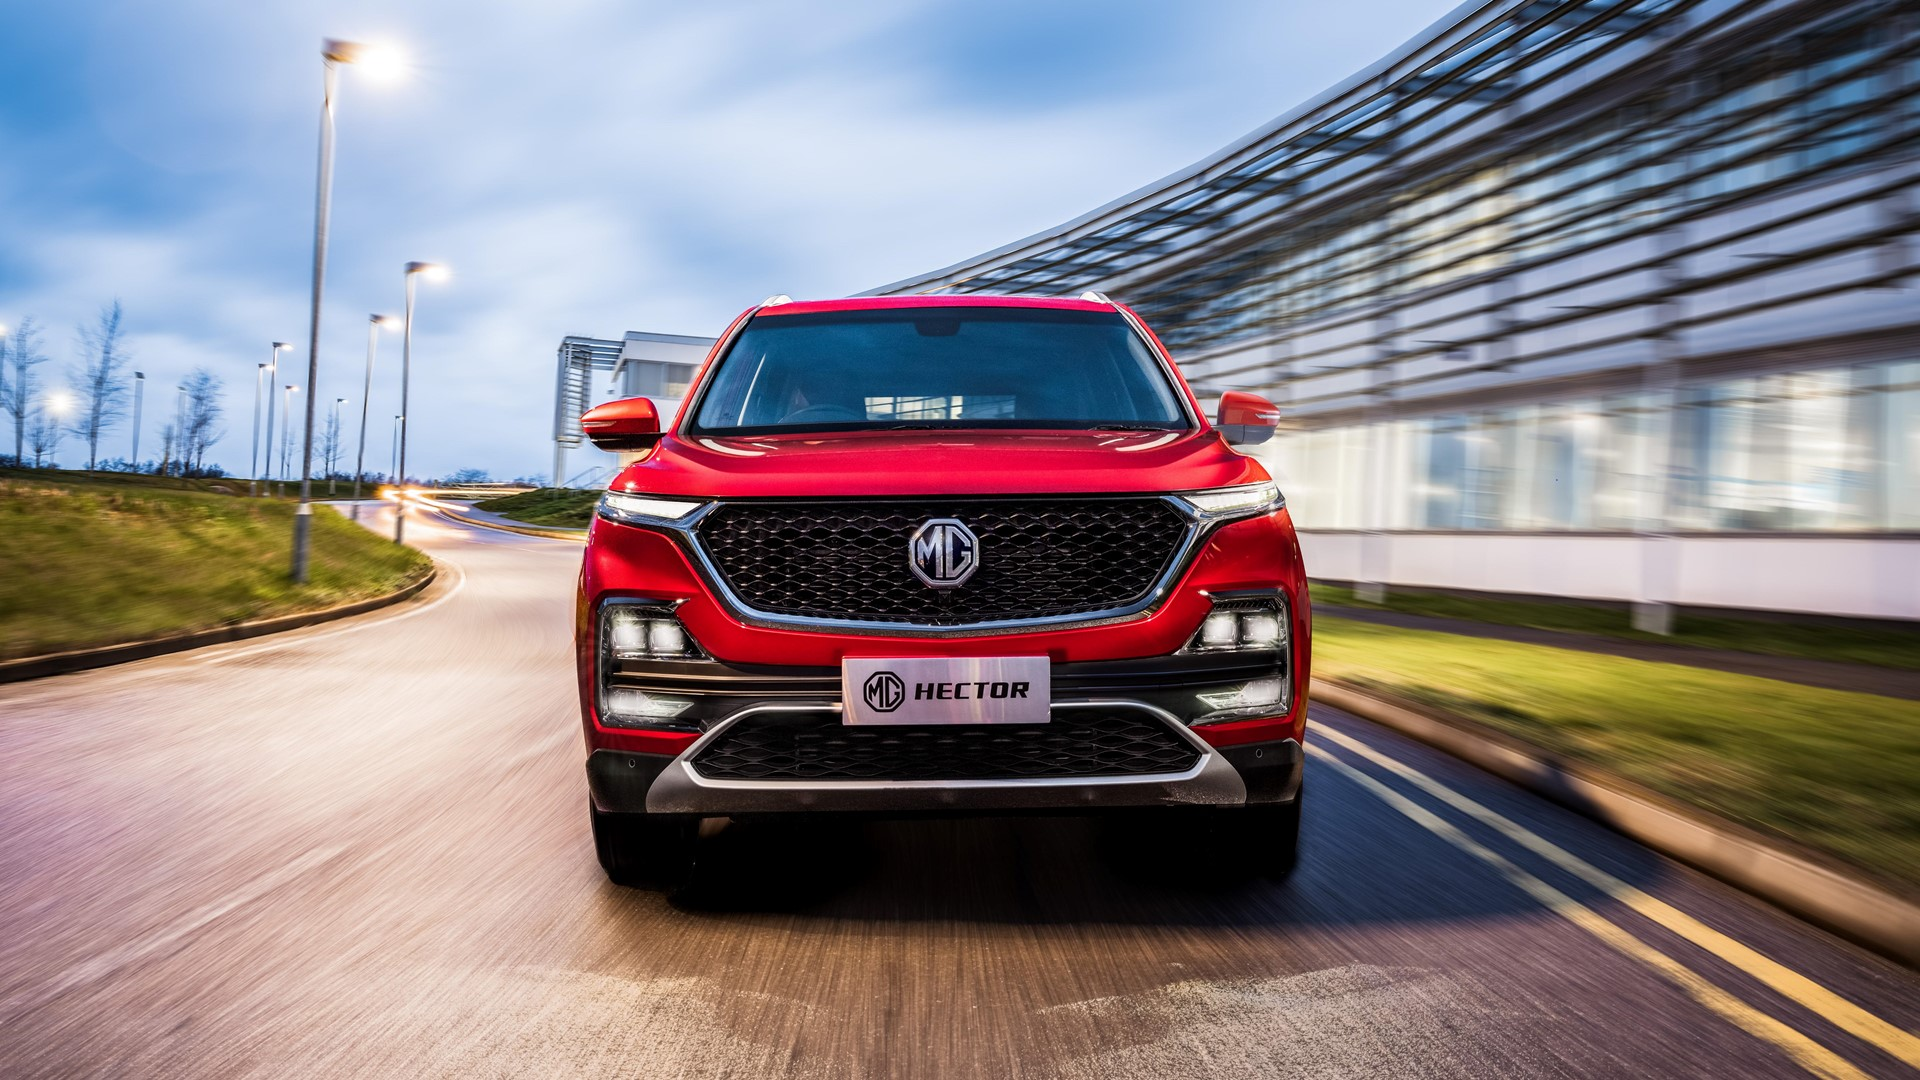 MG Motor teases the launch of MG Hector Internet car; unveils iSMART infotainment system in India 3